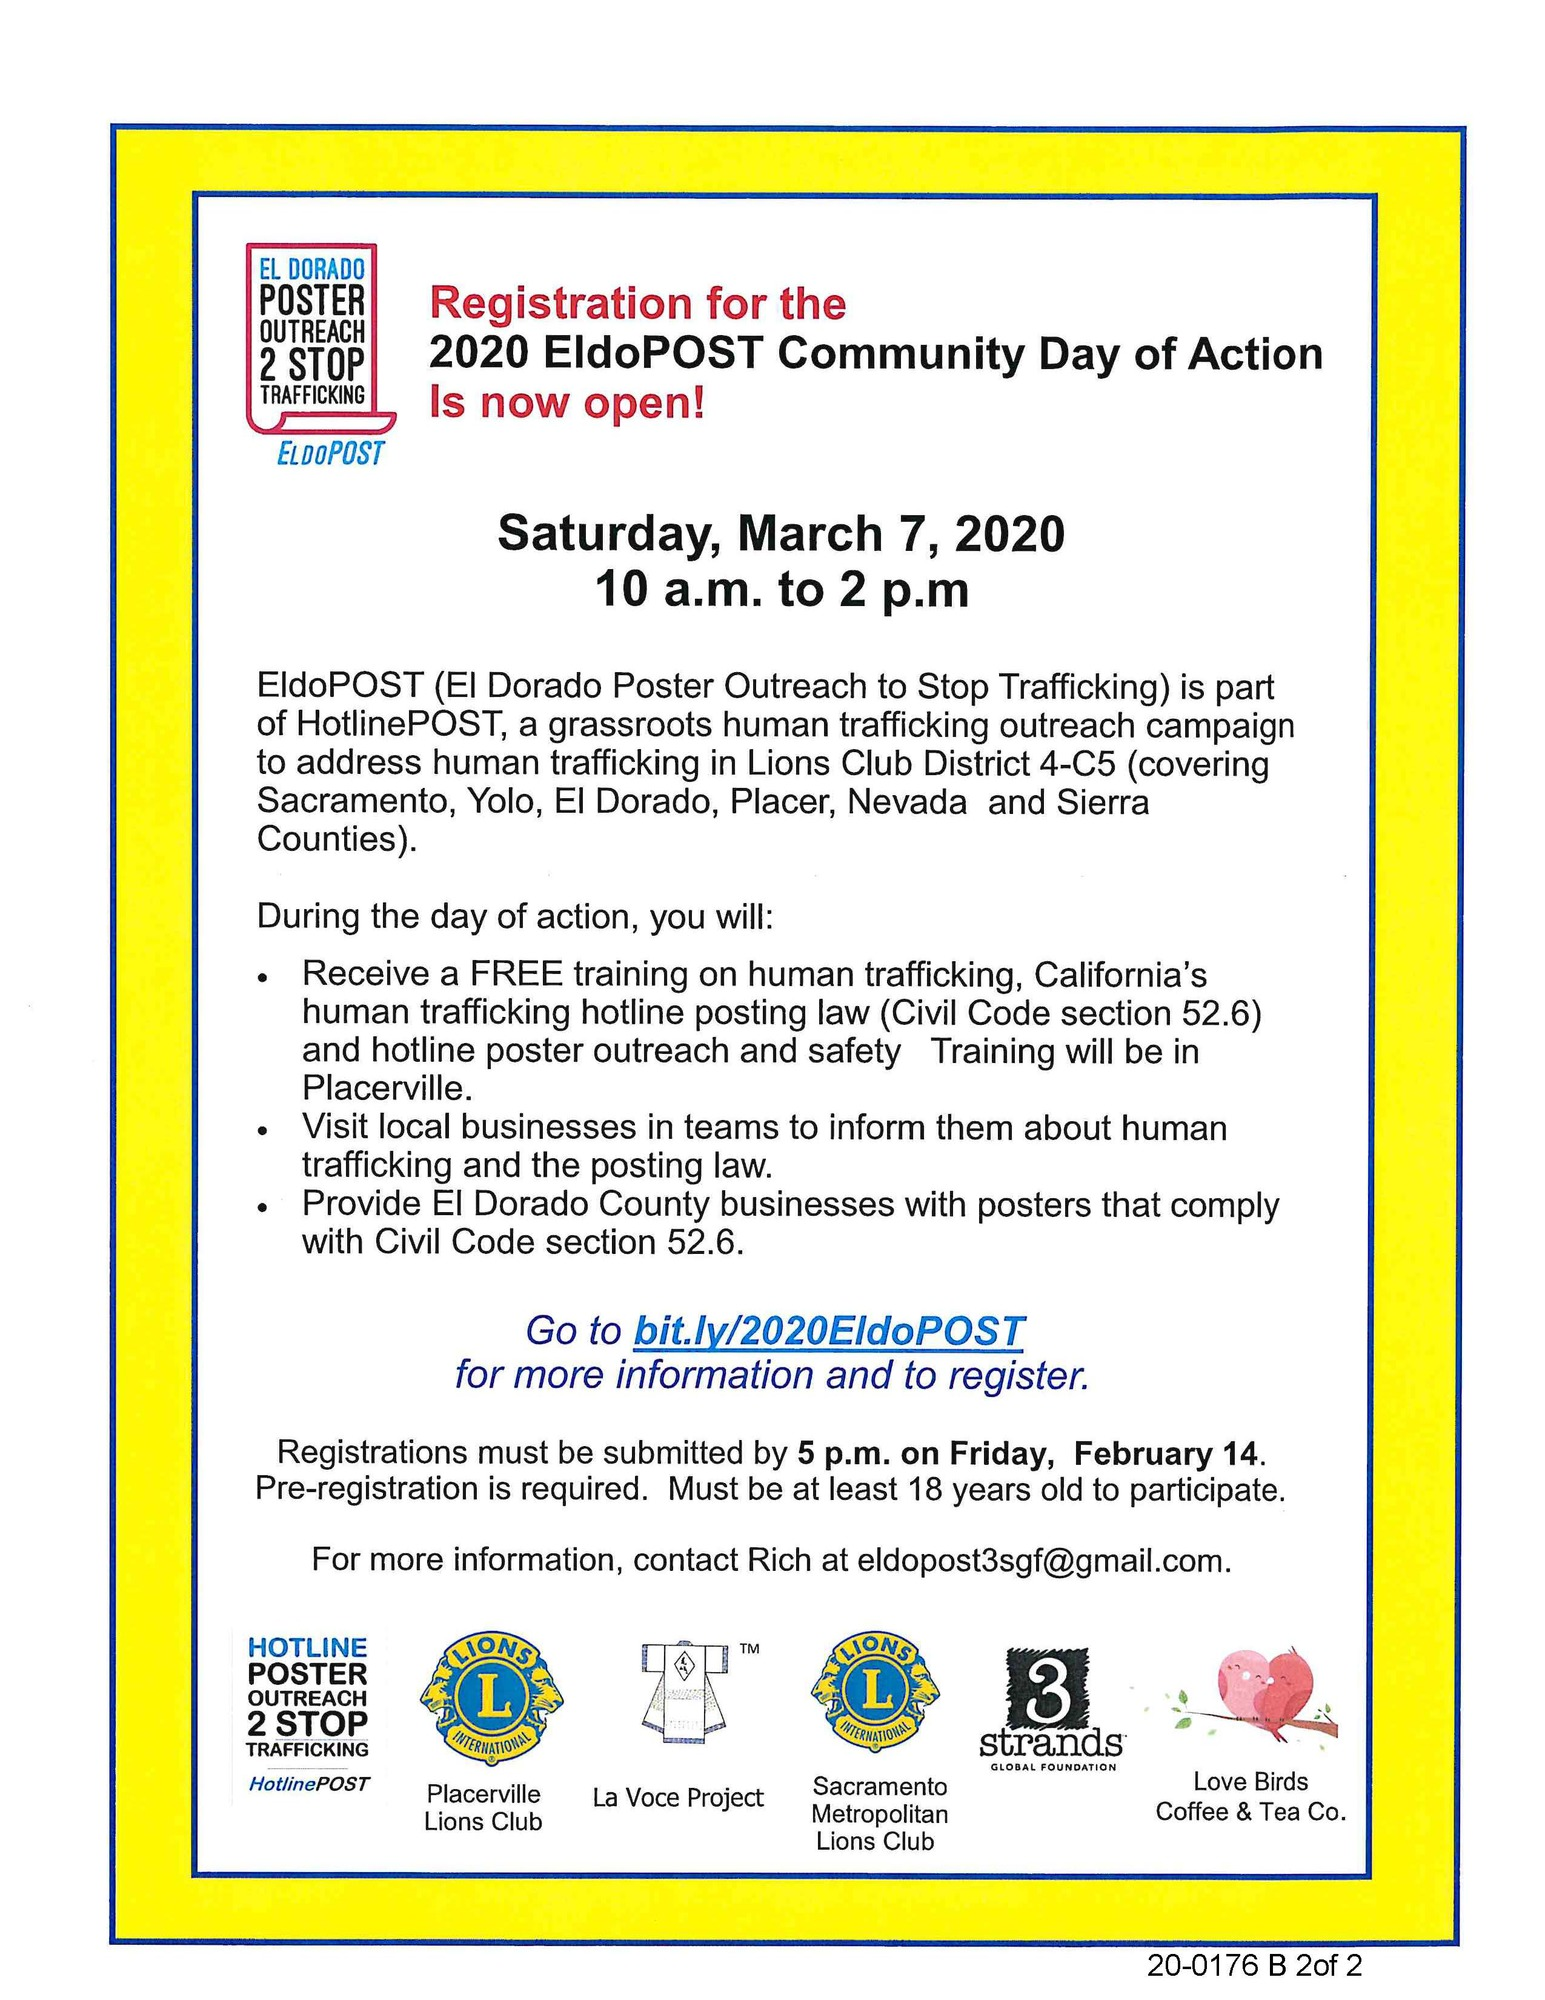 B 2-4-2020 Lions Club Stop Human Trafficking Posters_Page_2